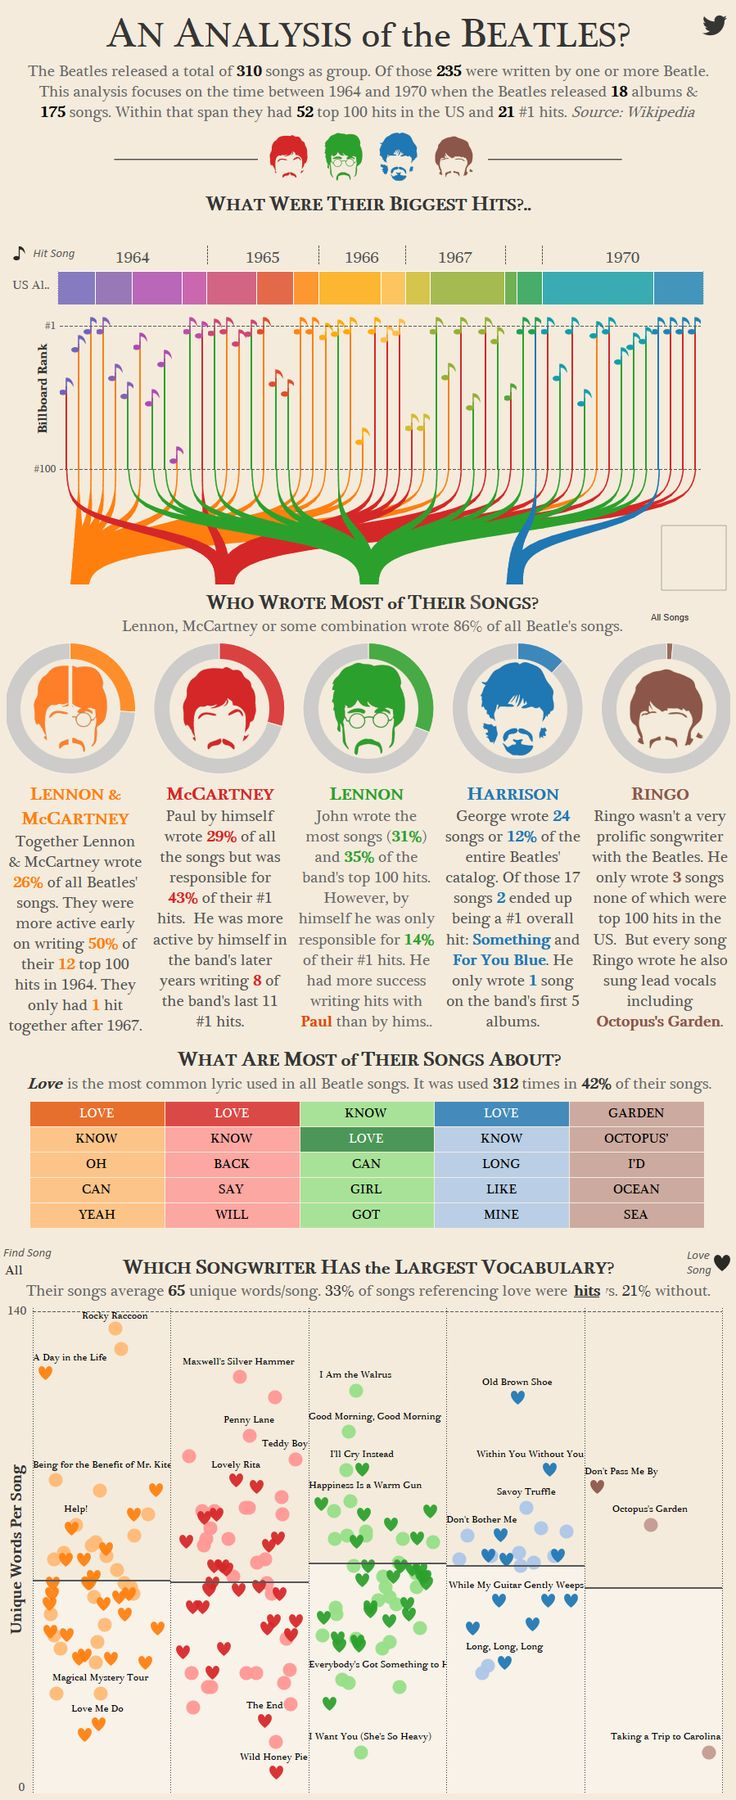 Infographic showcasing who the best songwriter was among the Beatles.